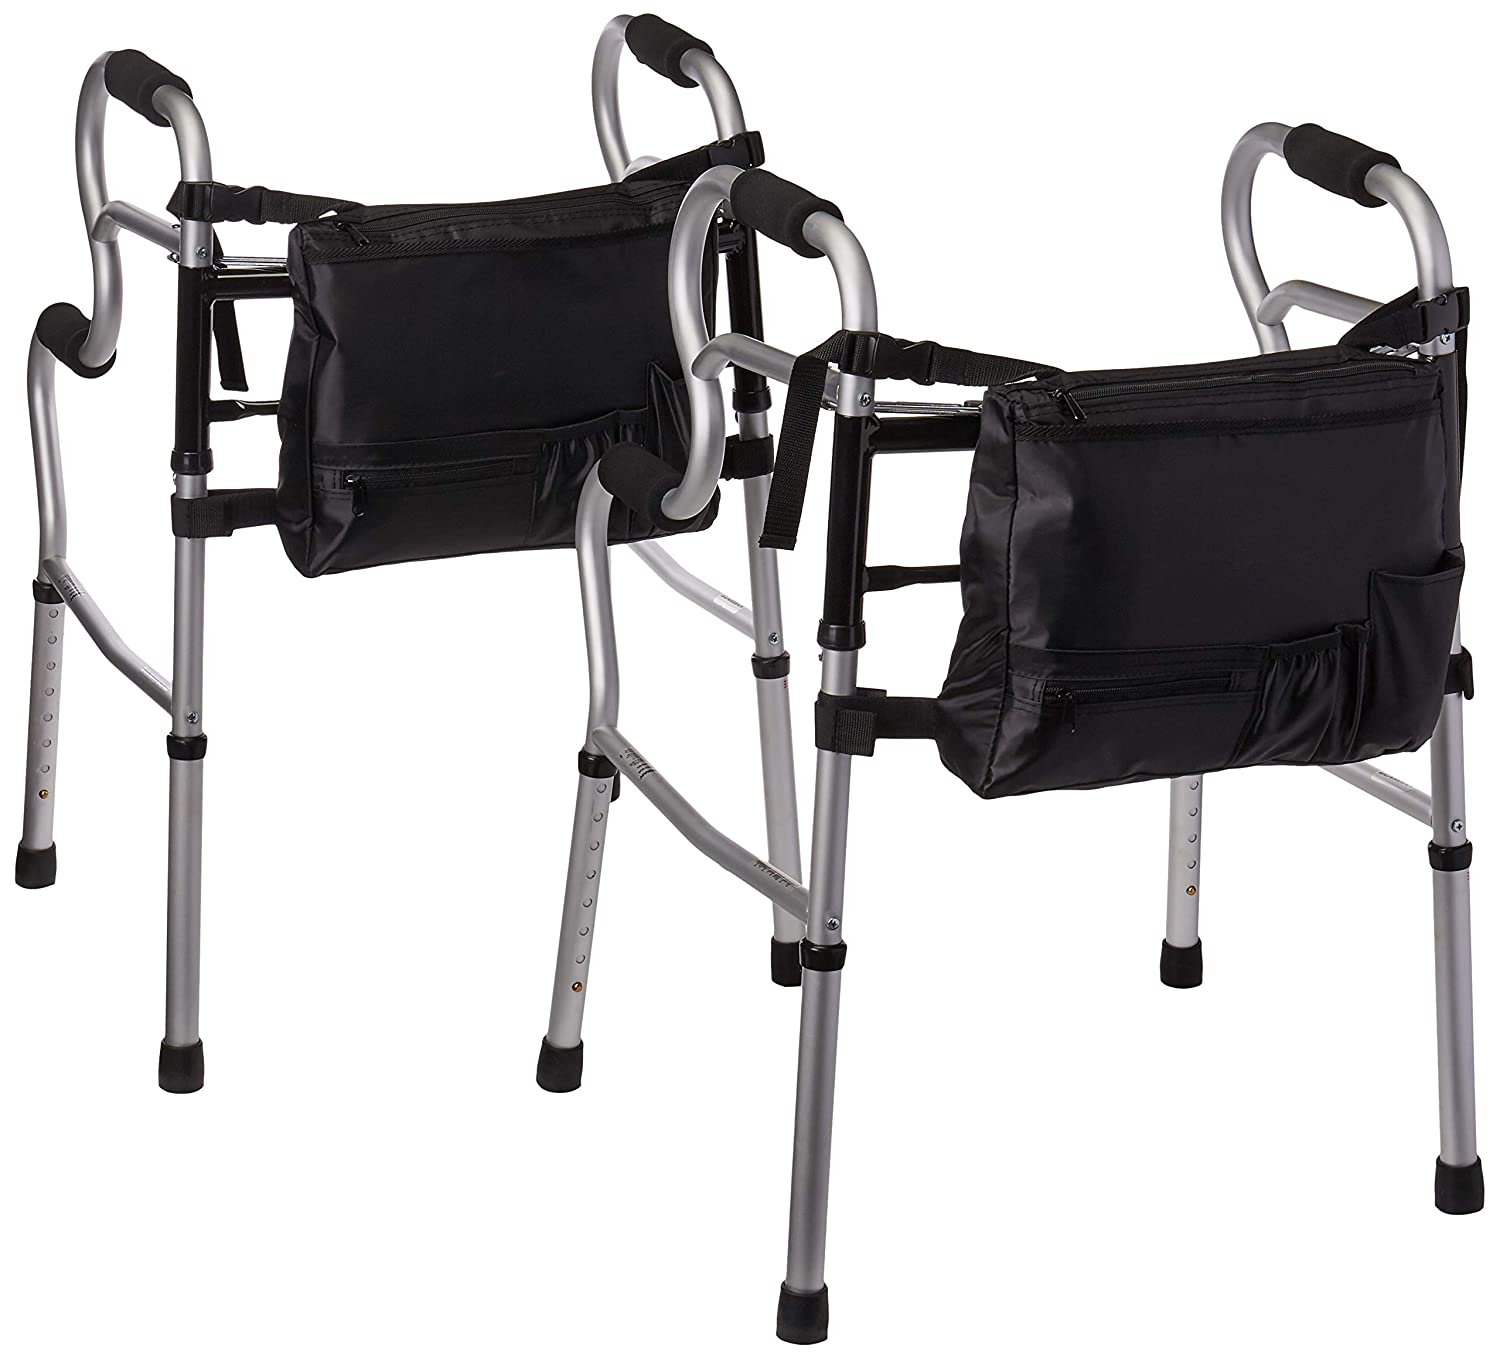 Amazon.com: Medline MDS86410UR 3-in-1 Stand Assist Walker with Bag, Silver (Pack of 2): Health & Personal Care